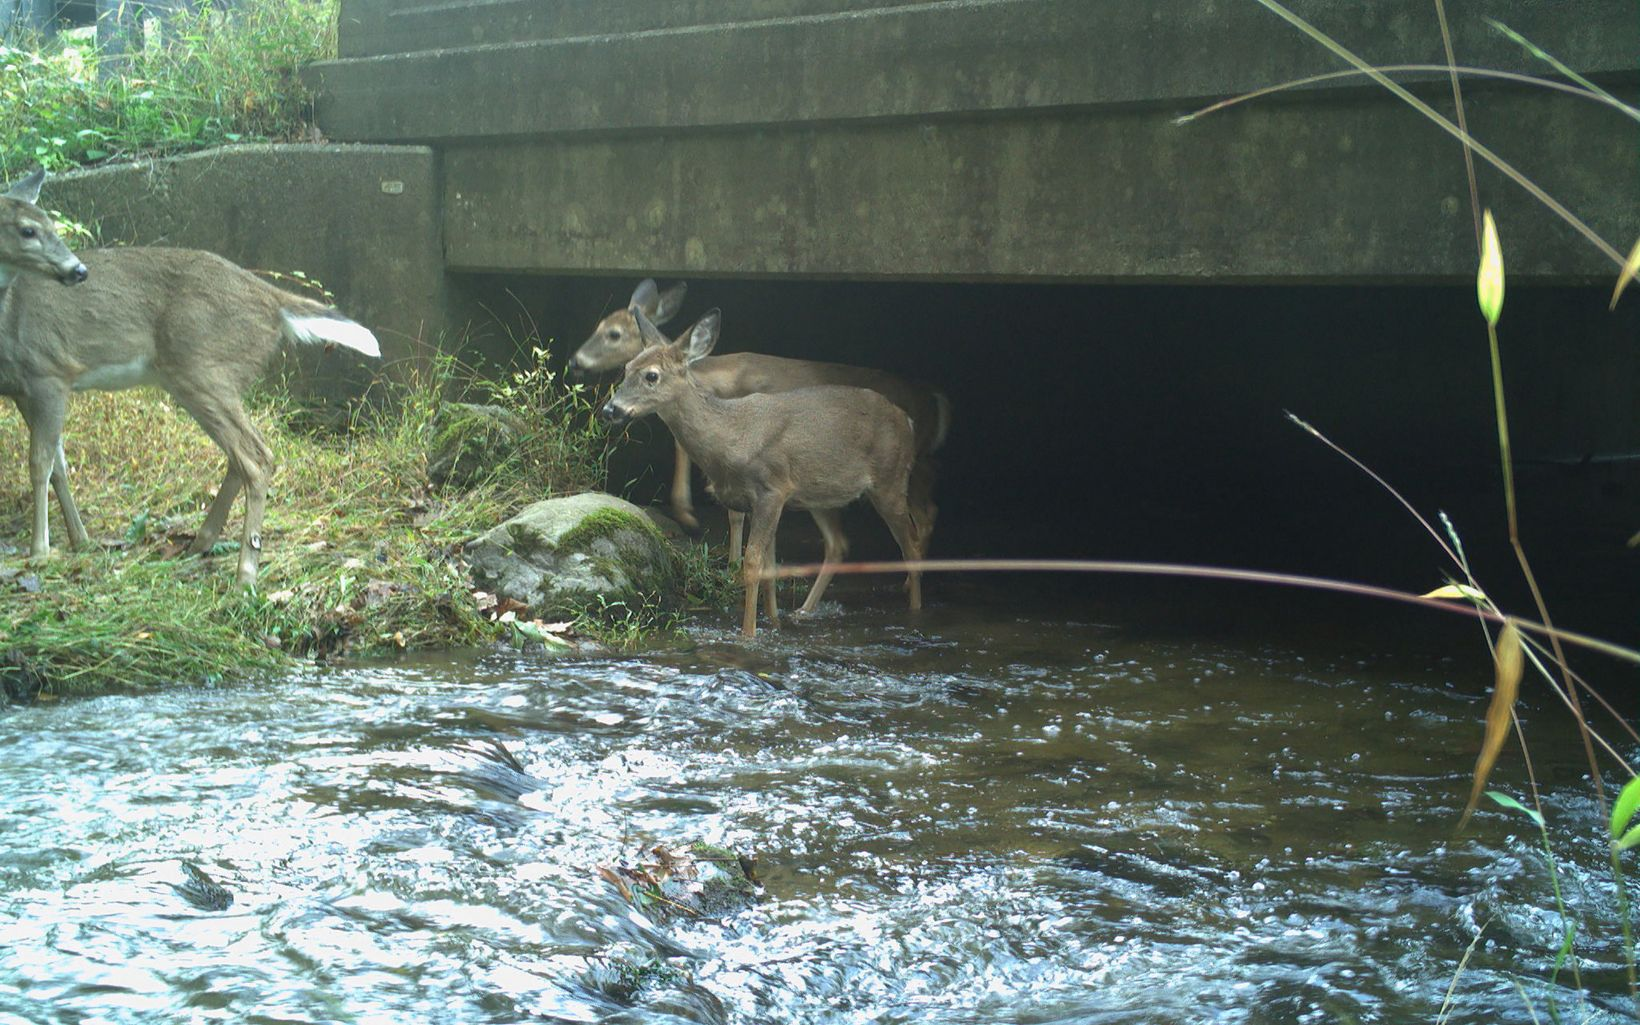 Deer emerging from culvert